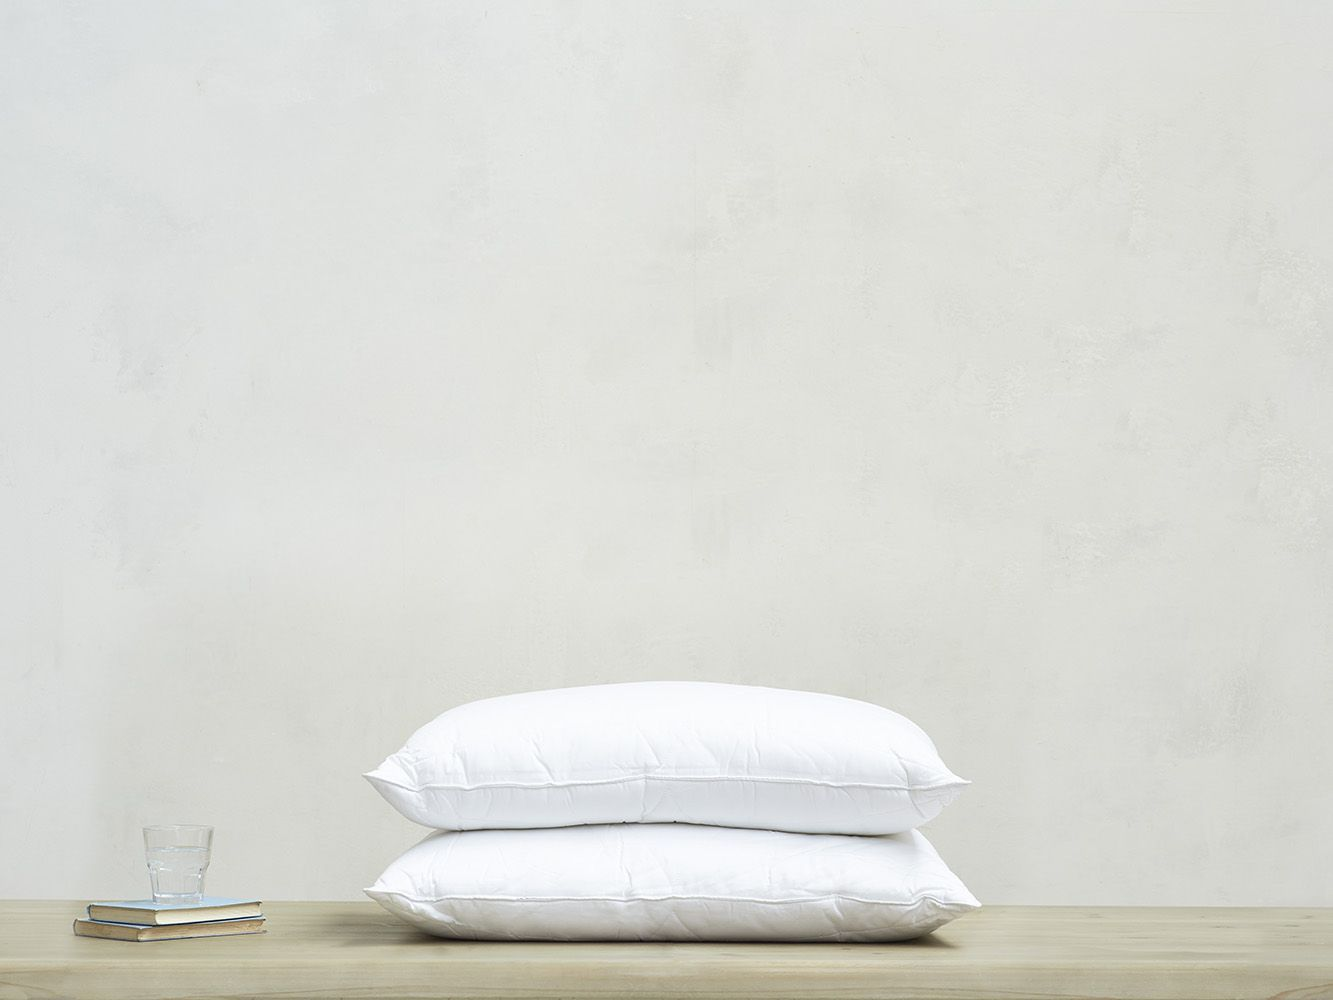 Best pillows UK 2020: 9 top options for